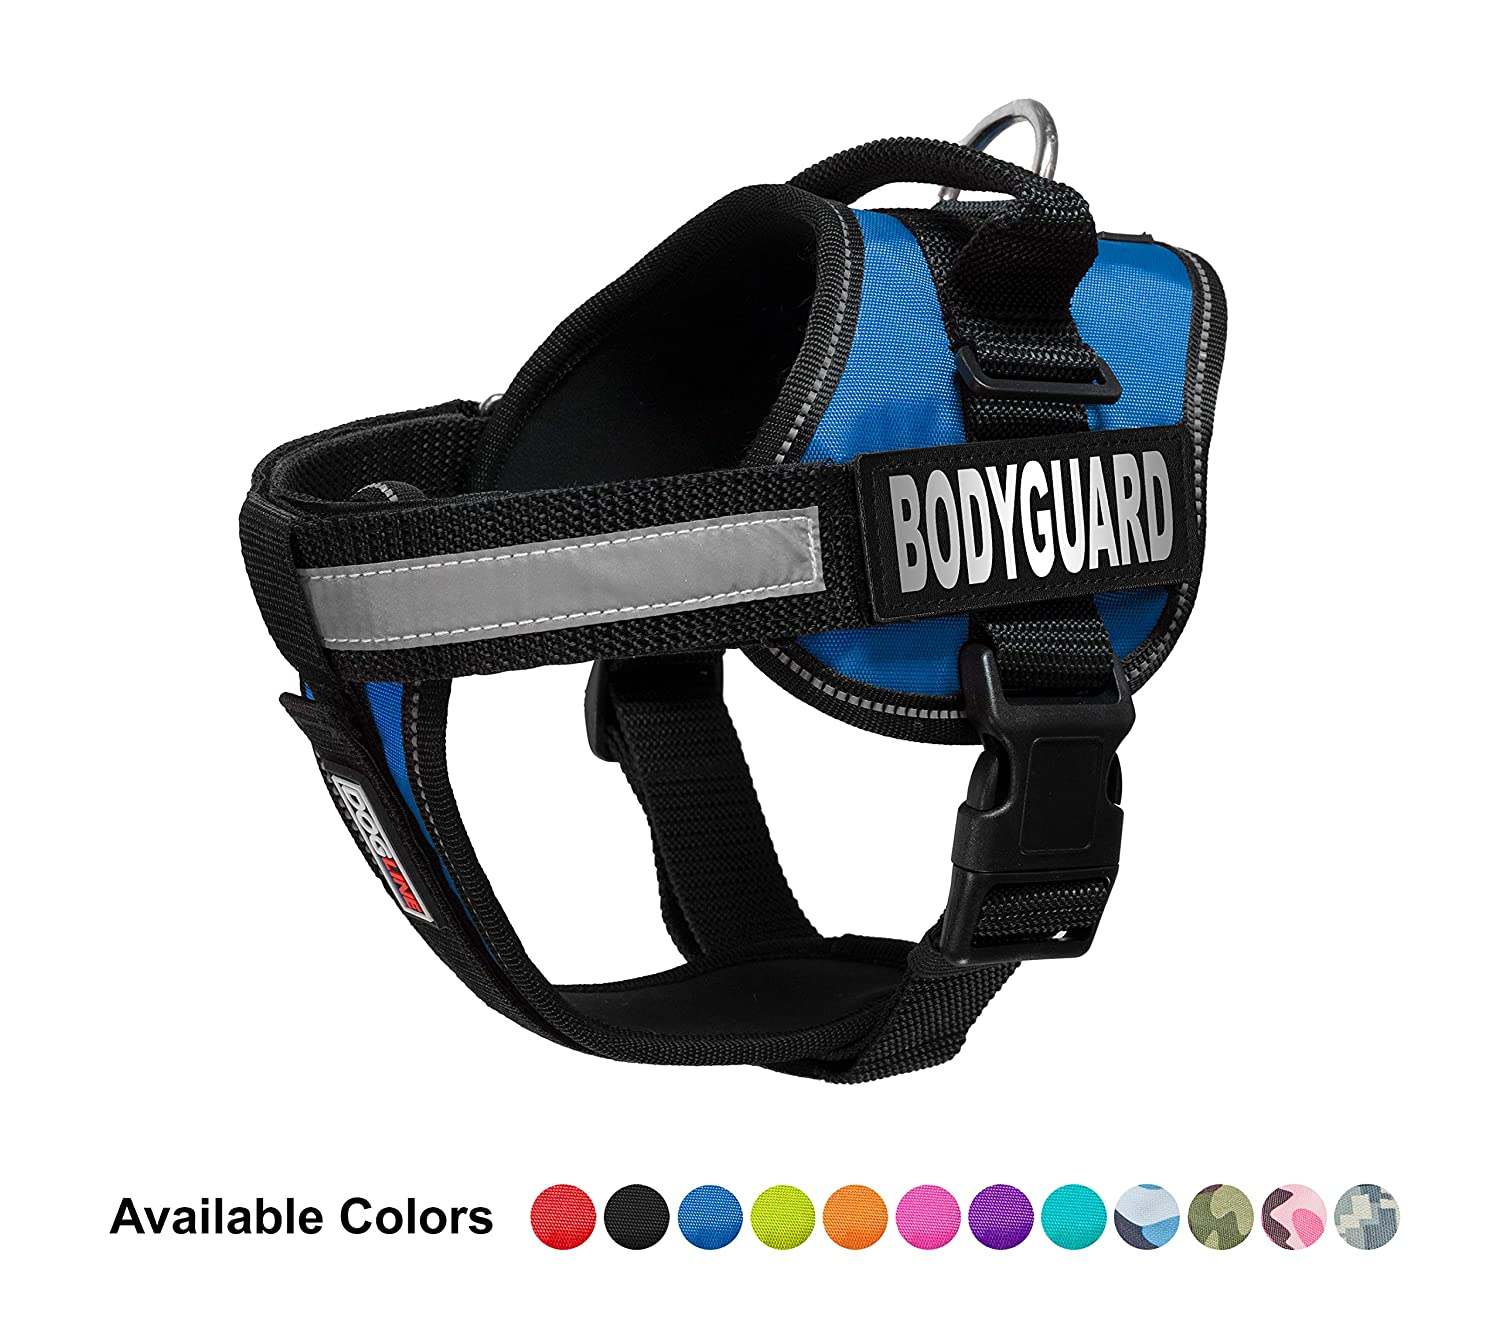 bluee Large bluee Large Dogline Unimax Multi-Purpose Vest Harness for Dogs and 2 Removable Bodyguard Patches, Large, bluee